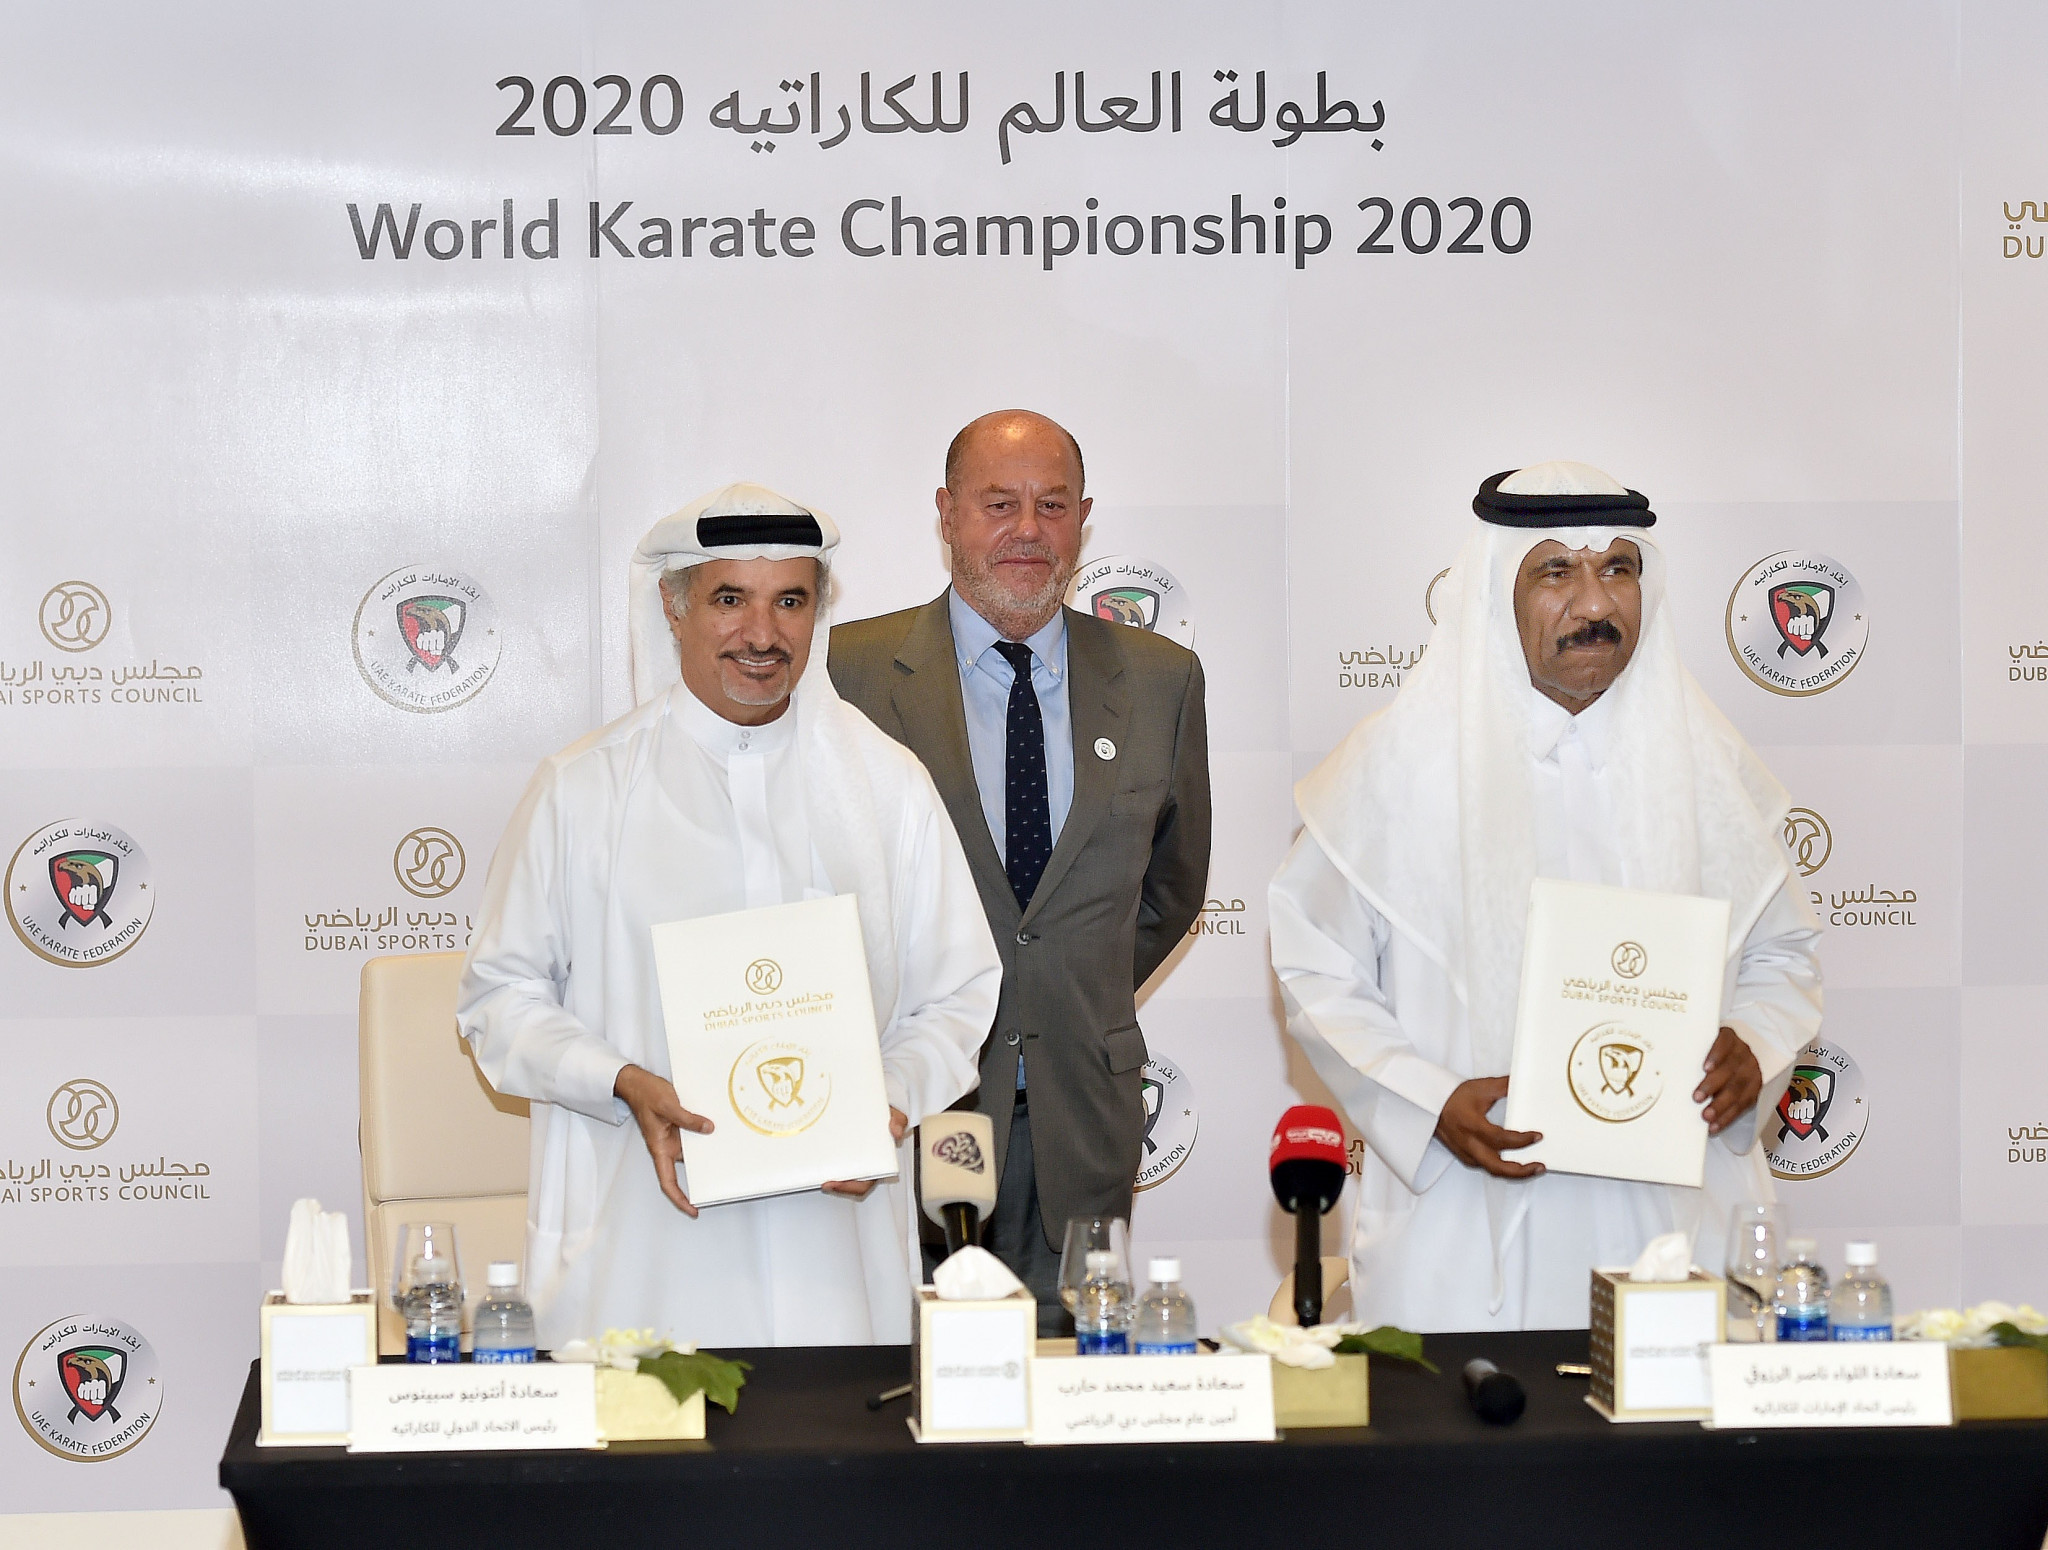 Espinós admits Dubai World Championships will be key to karate's Olympic hopes post-Tokyo 2020